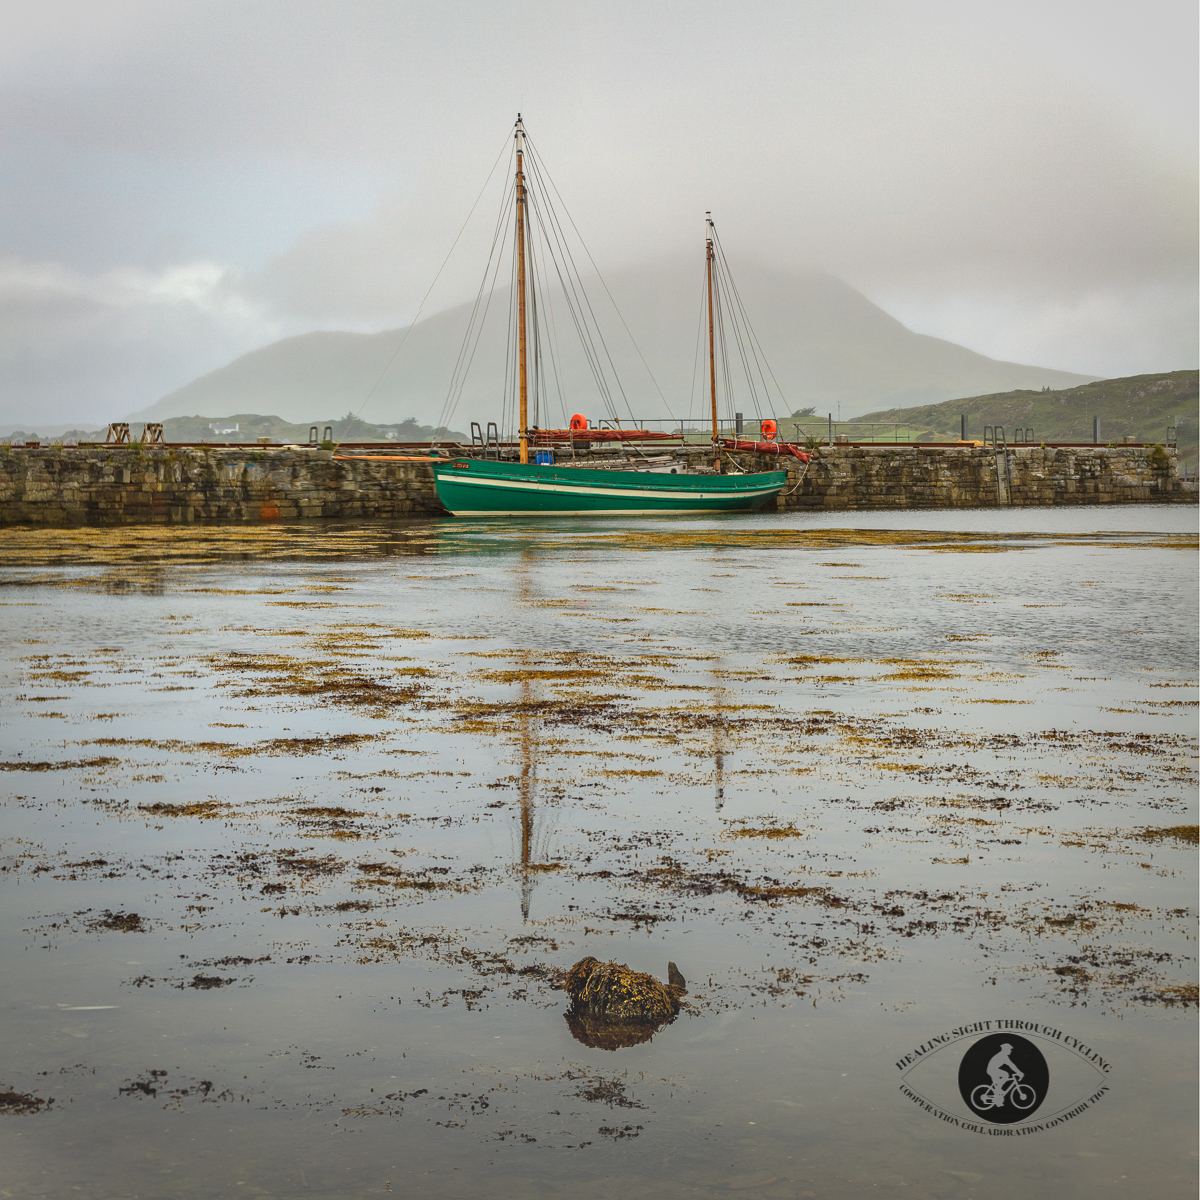 Sailboat at the Avoca Letterfrack Pier - County Galway - square